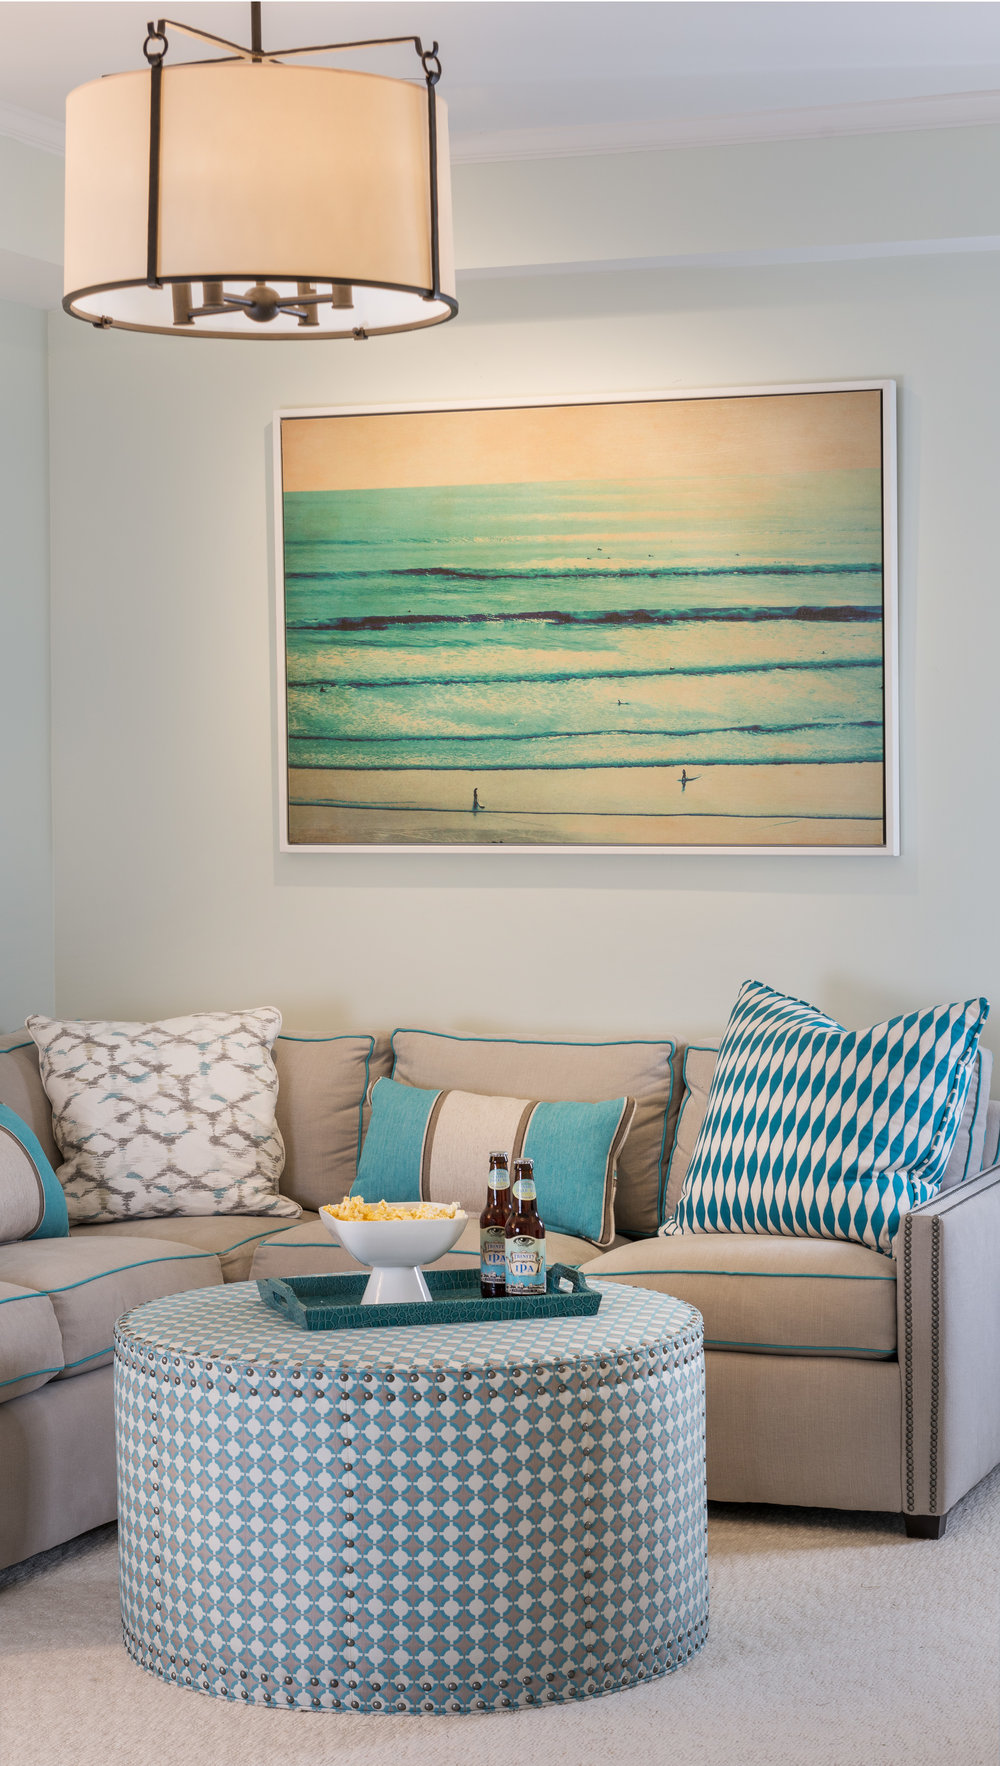 Easton's Beach, Newport, Rhode Island, interior design, beach design, beach print, turquoise blue, aqua blue, living space